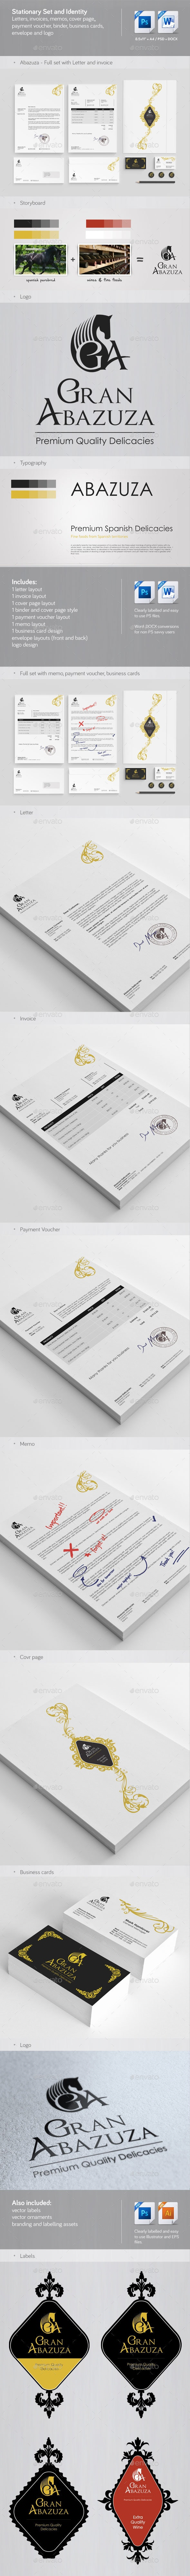 Corporate identity, stationery and brand assets - Stationery Print Templates